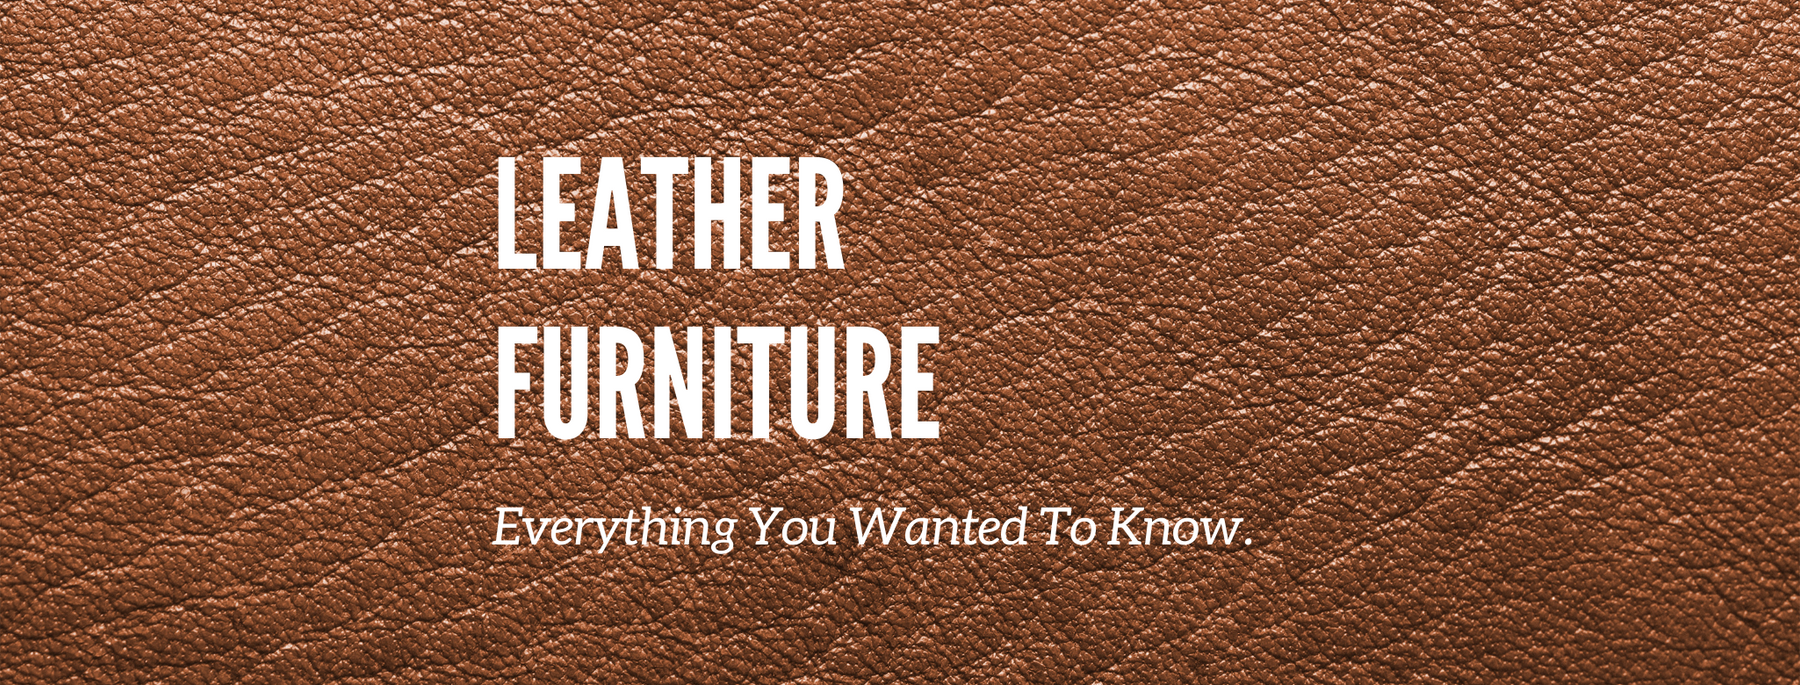 Leather Furniture: Everything You Wanted to Know